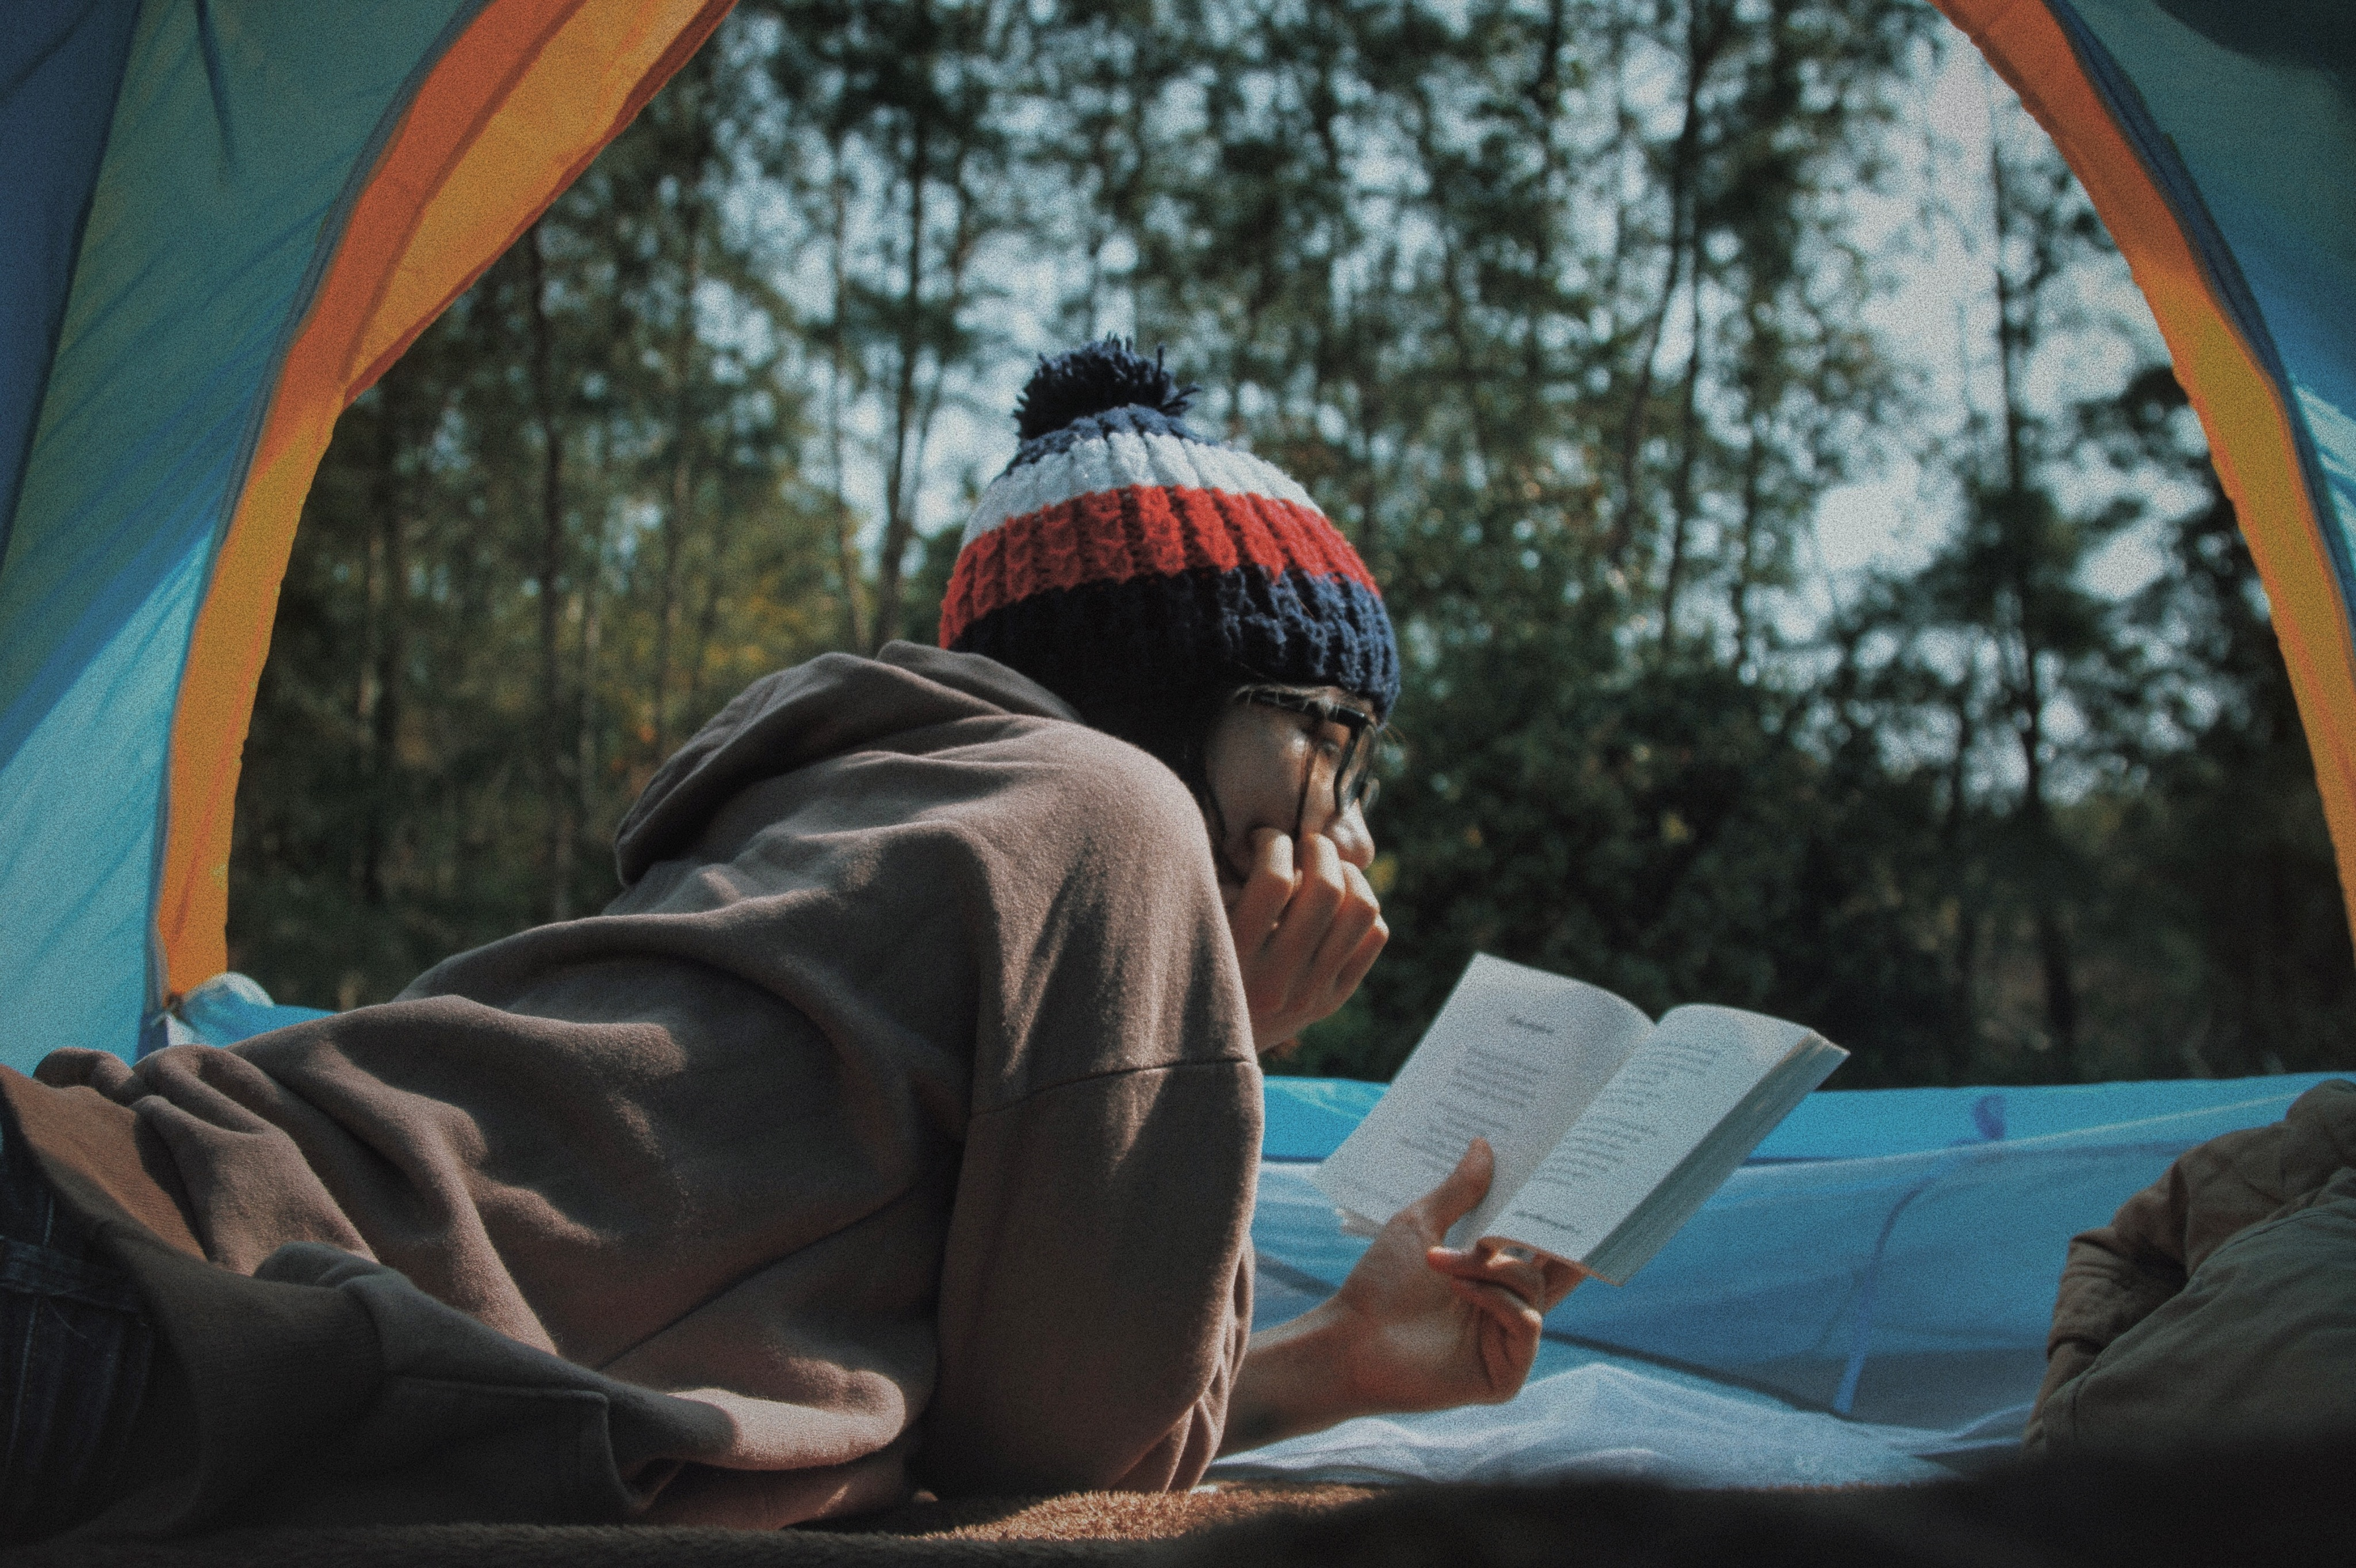 Young woman reading a book in a tent outside